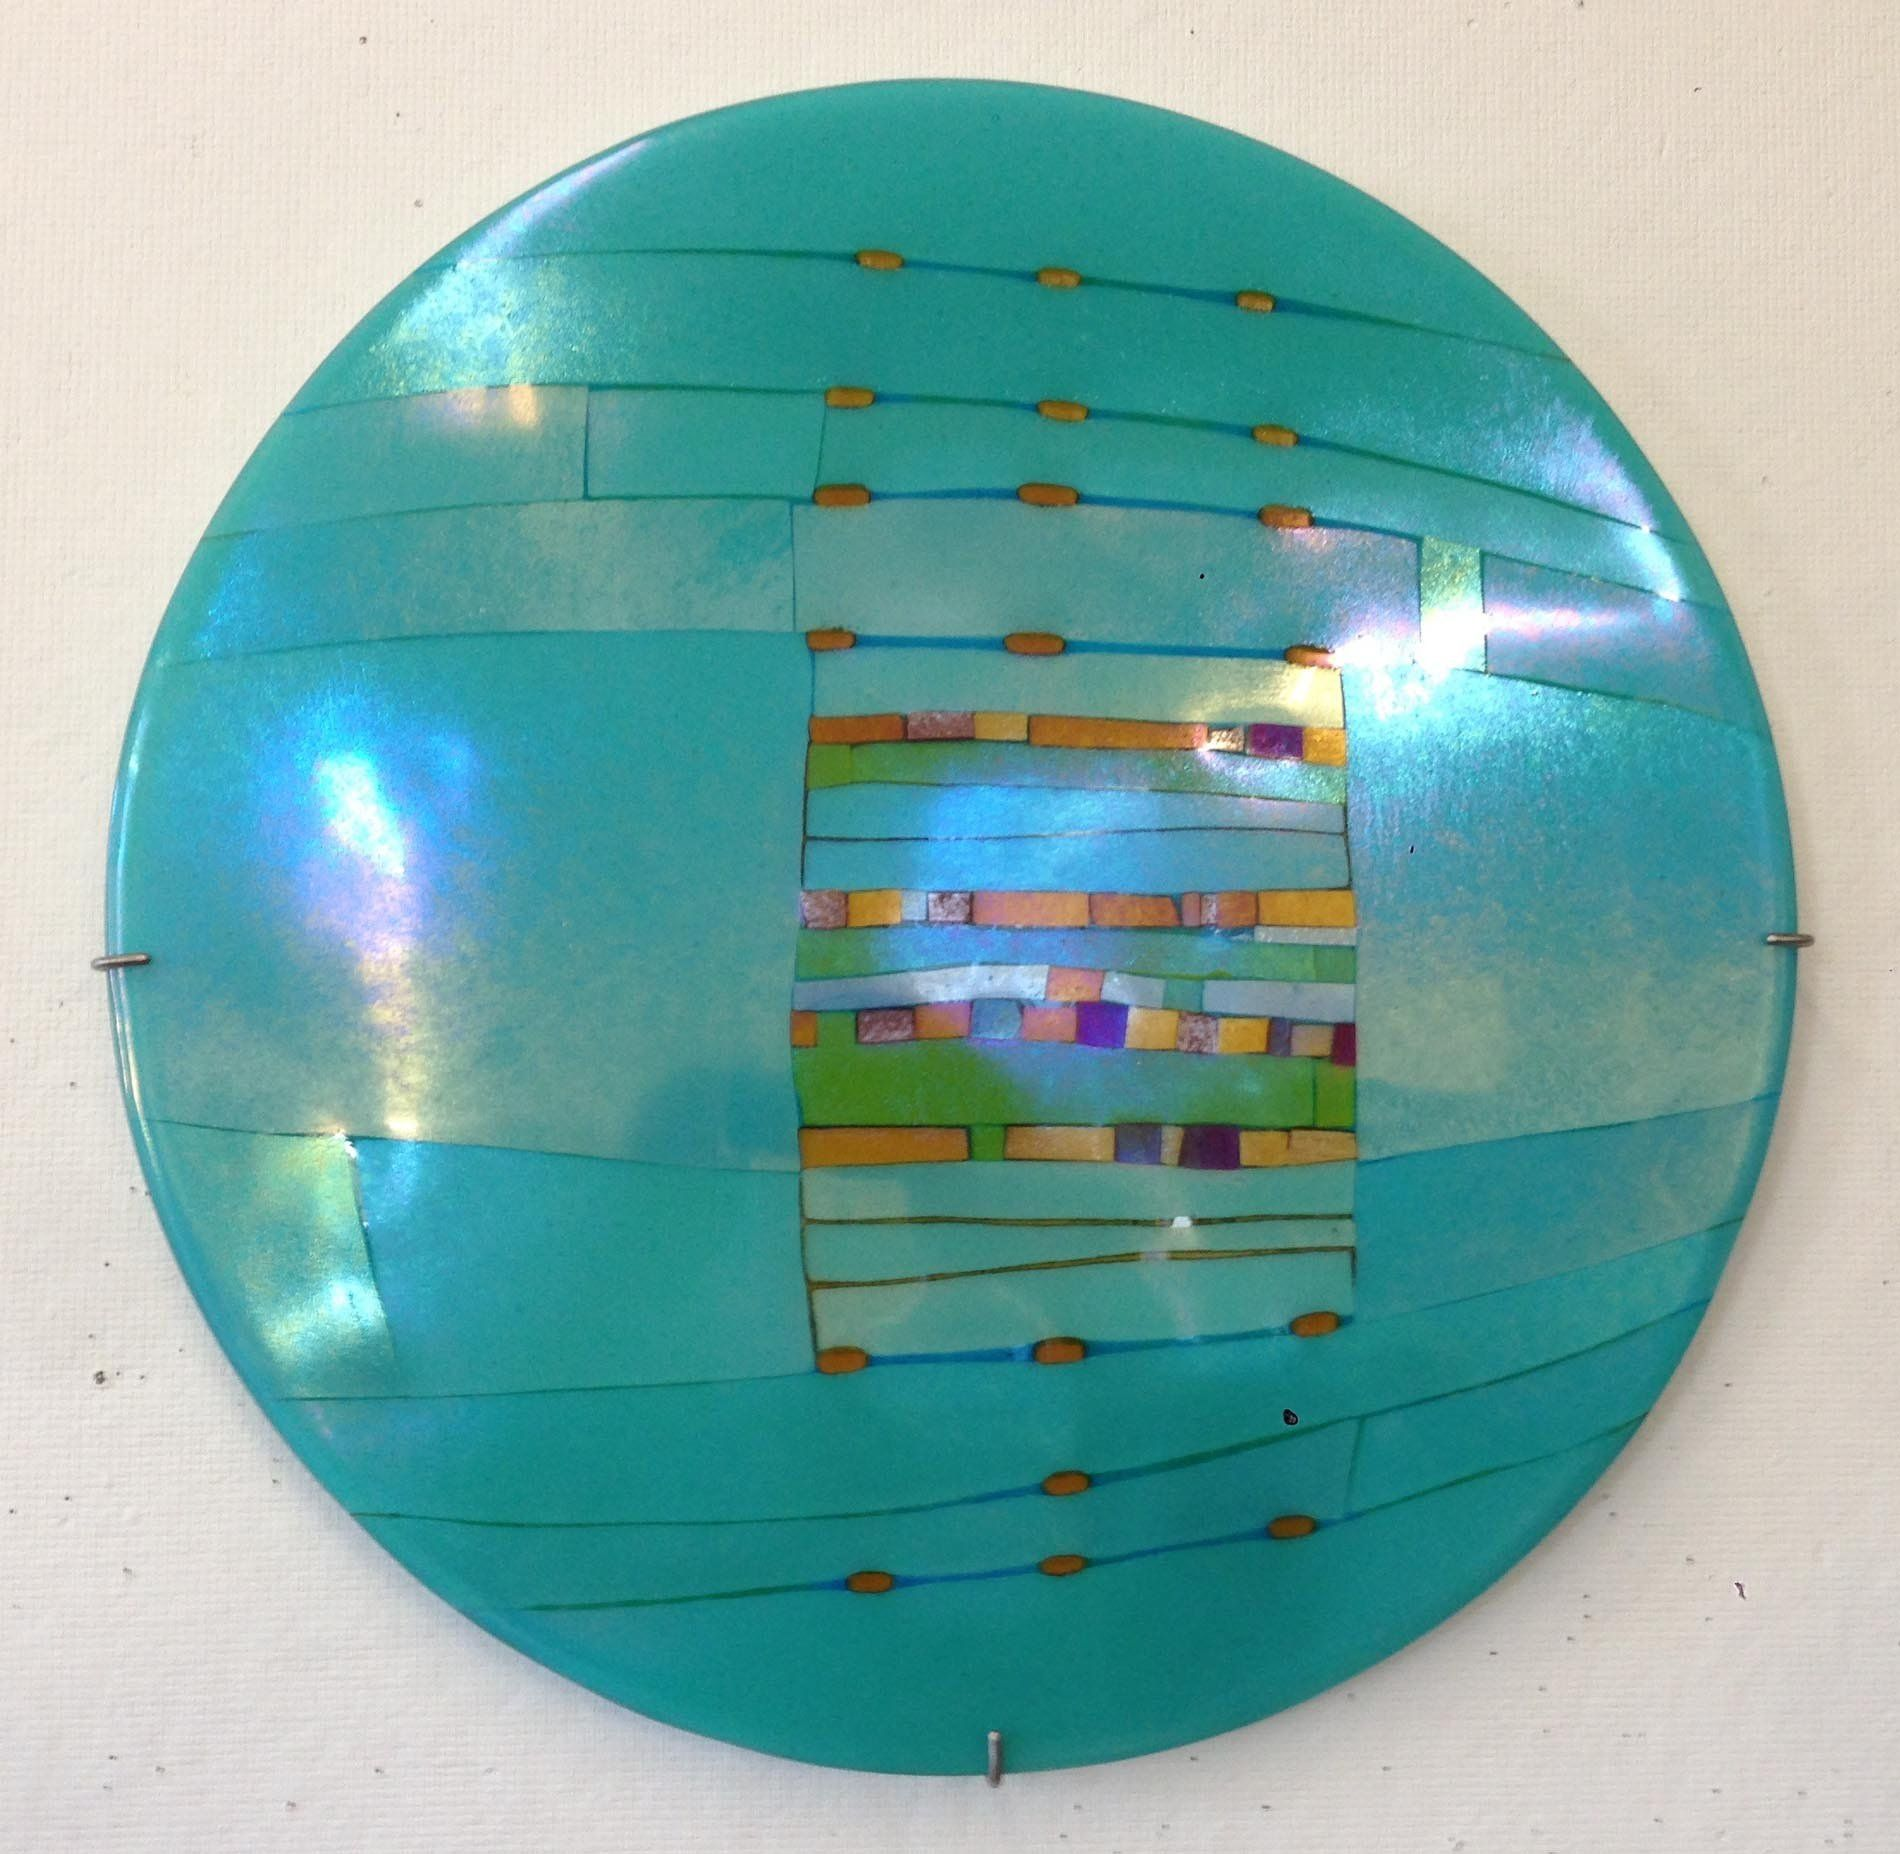 Aqua window round by lynn latimer art glass wall sculpture